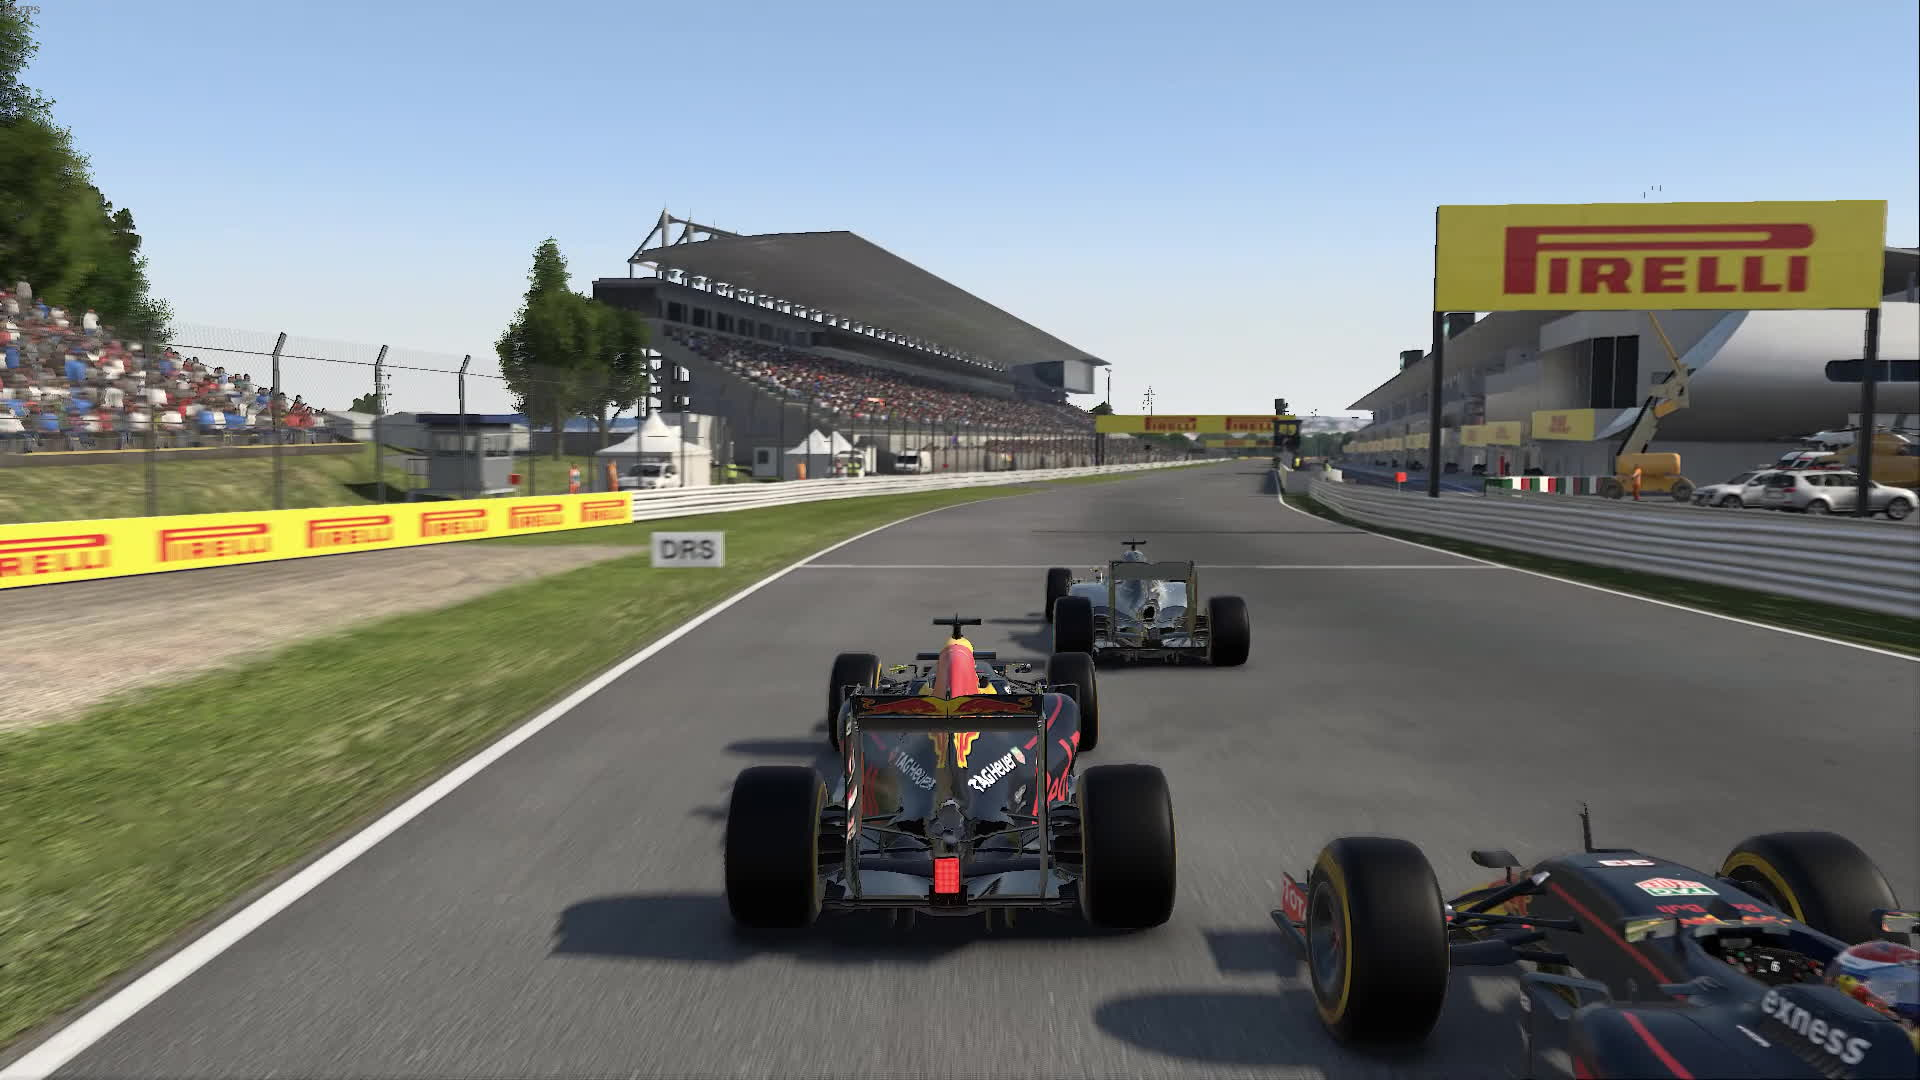 F1Game, f1 2016, japan, F1 2016 - Japan Turn 1 - 4 man wide GIFs